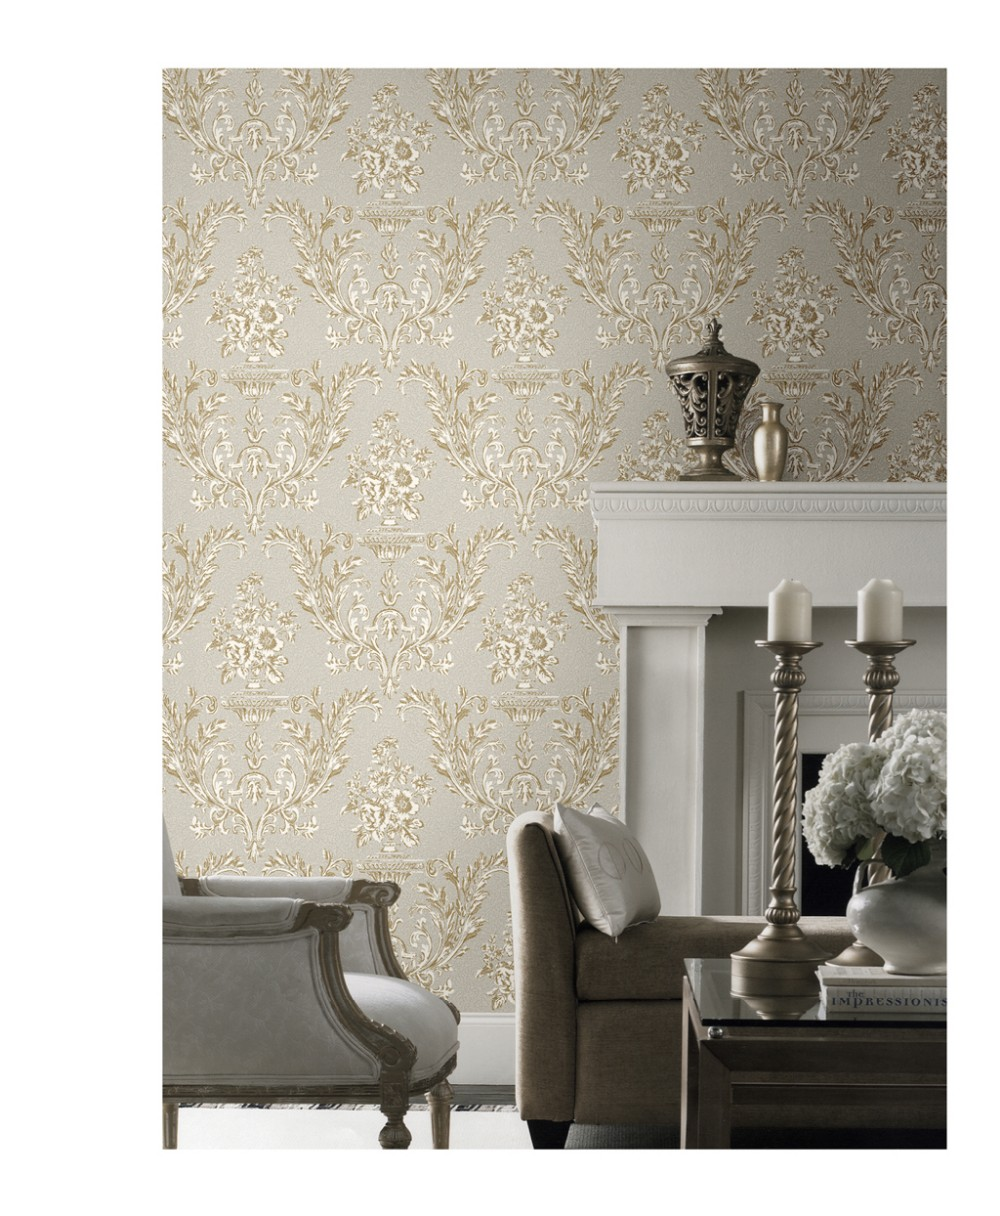 Wallpaper Home Decor Philippines Wallpaper Home